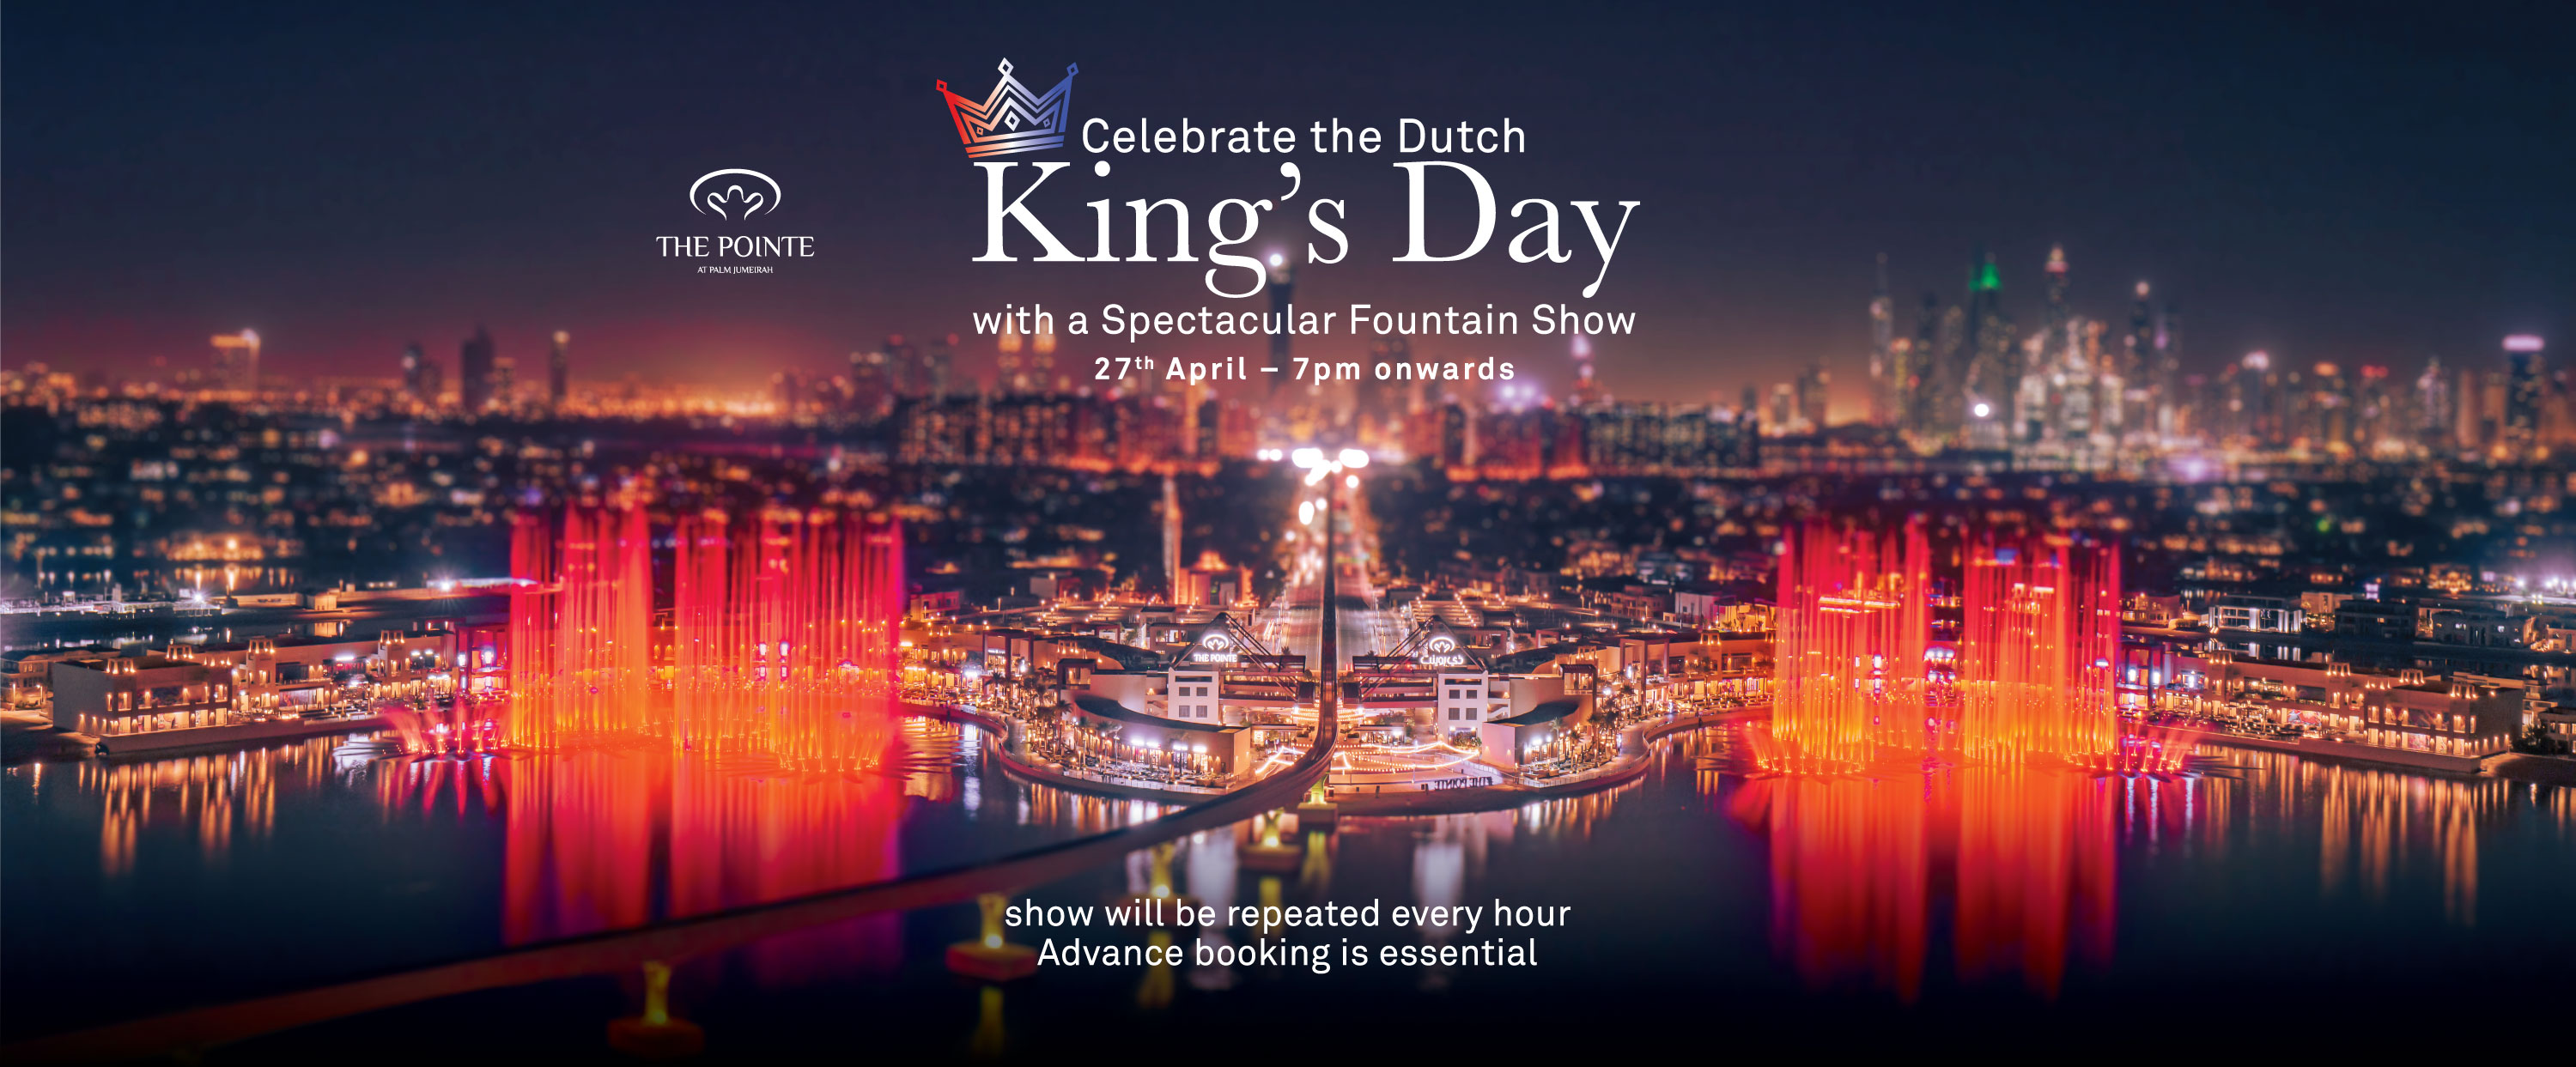 Celebrate King's Day like a royal at The Pointe